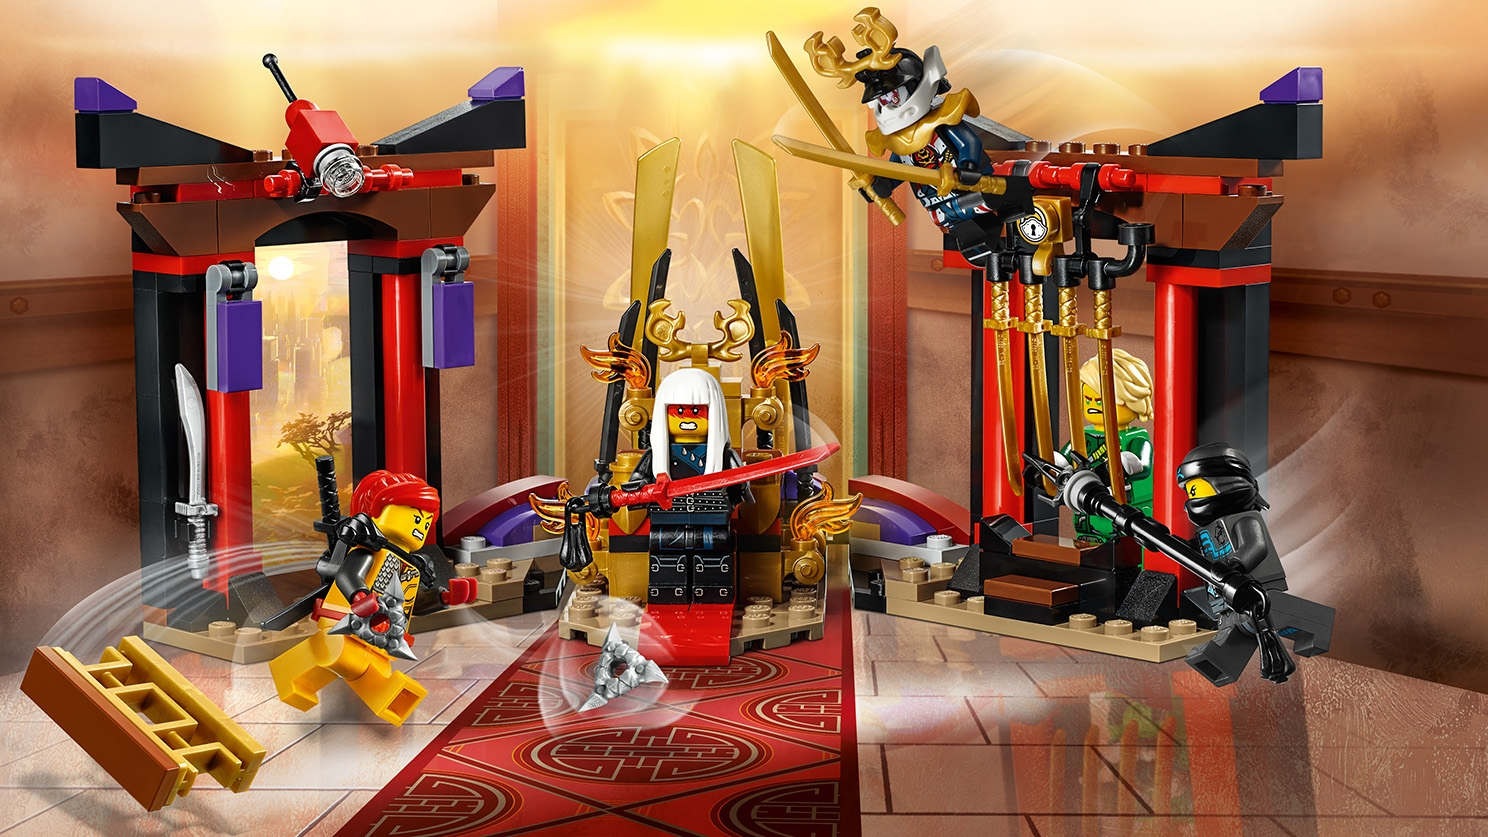 LEGO Ninjago - 70651 Thorne Room Showdown - Lloyd is trapped in the Palace of Secrets! Red haired Skylor smashes through the wall and Nya is in a face-off with Princess Harumi who has golden katanas.